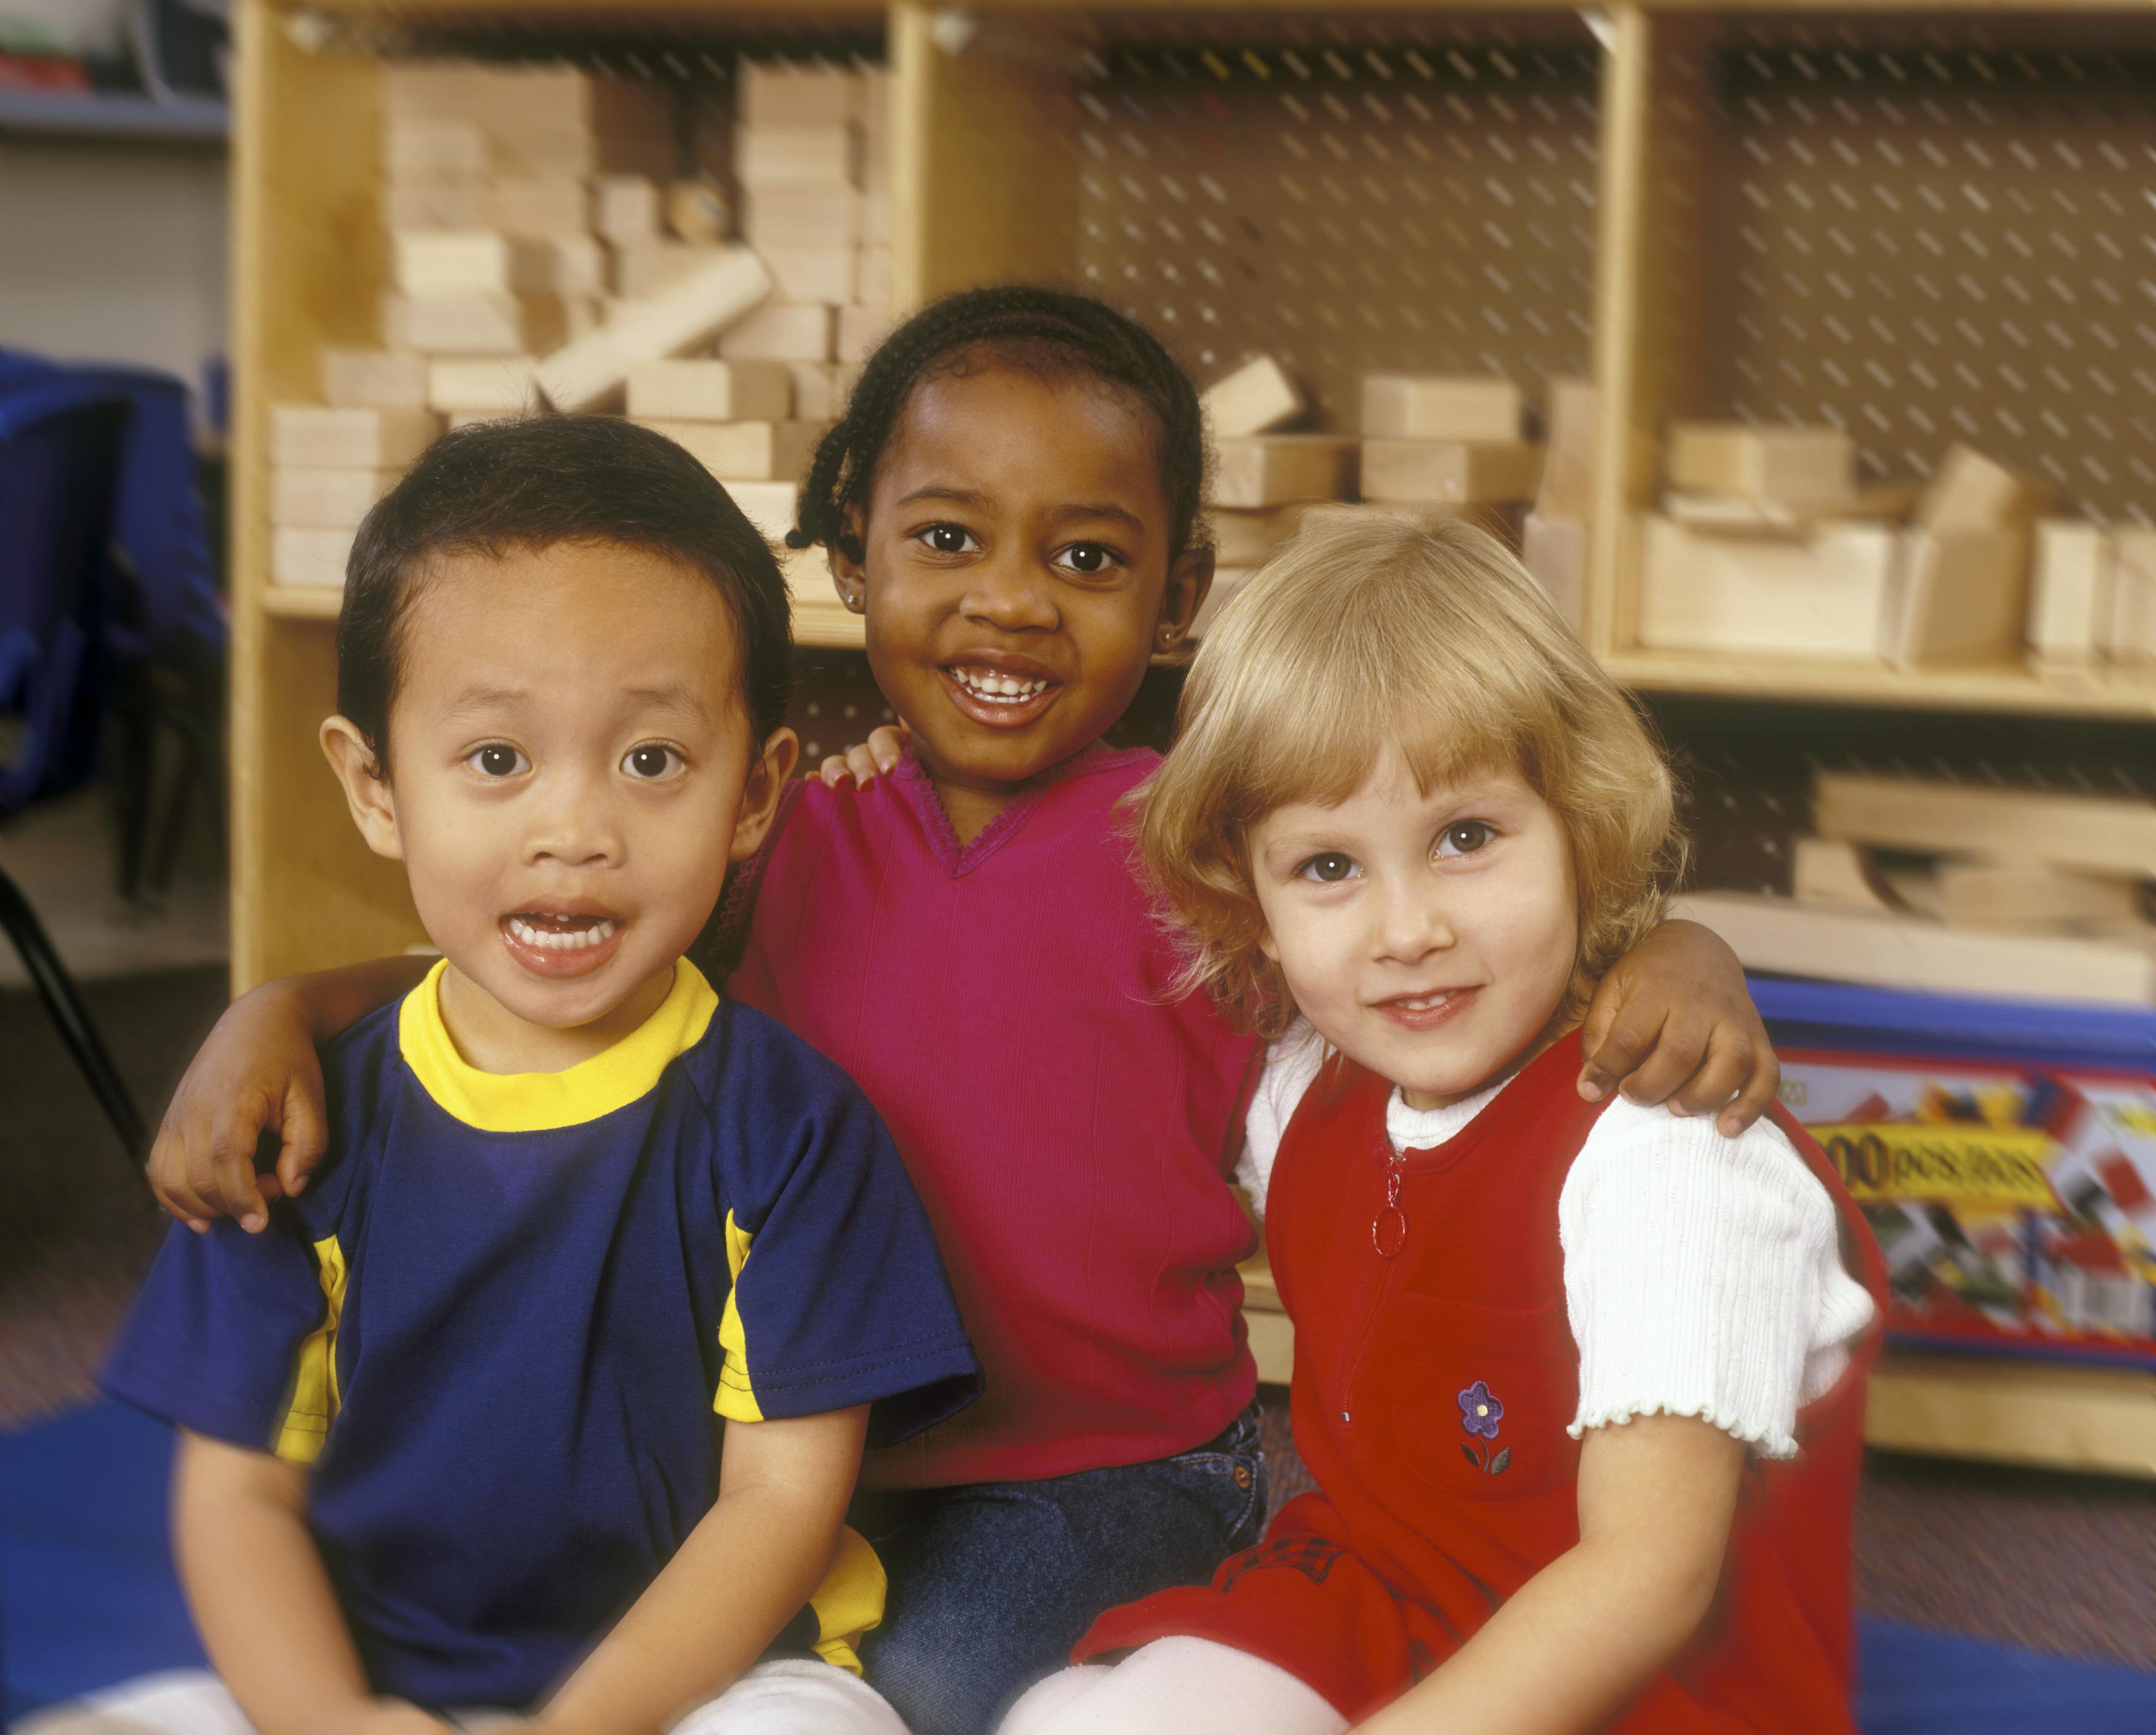 Overweight, obese kids achieved healthier weights after participating in Head Start programs